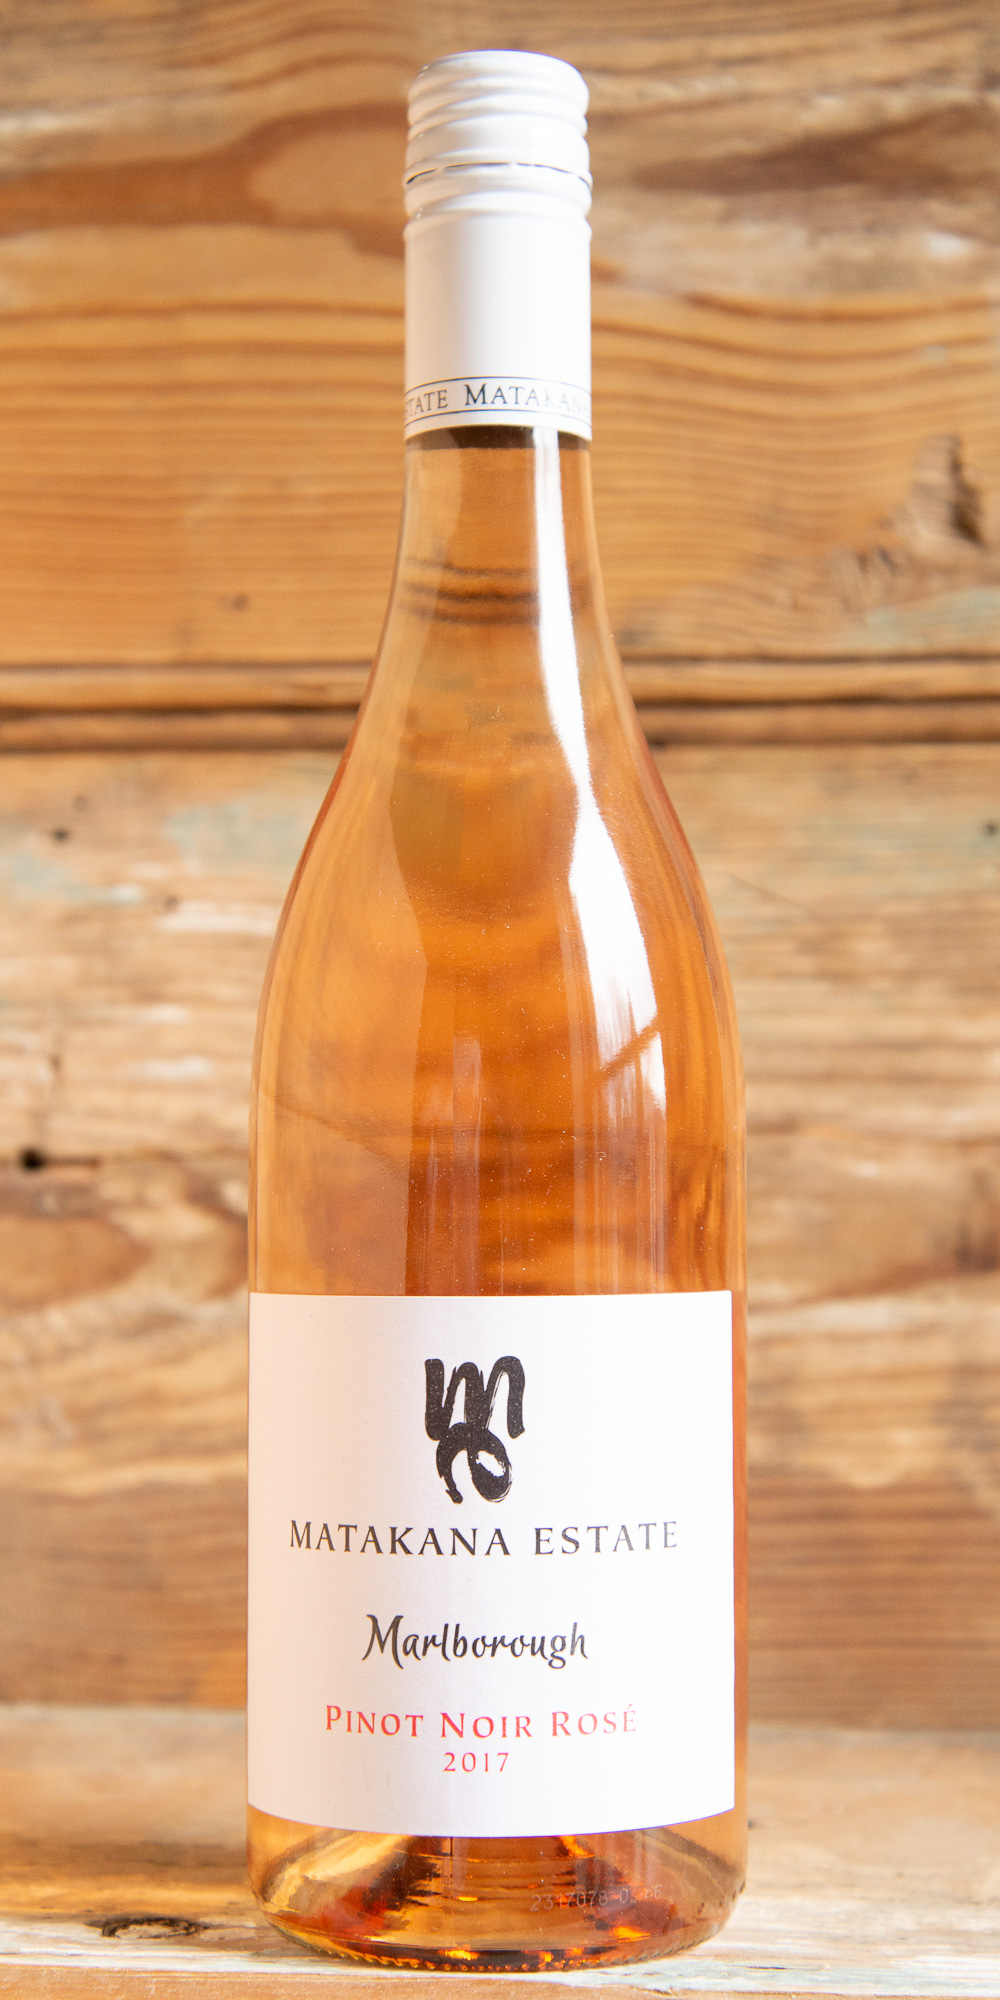 Matakana Estate Pinot Noir Rose 2016 - Origin: New ZealandRetail: $18.95 | Sale: $17.05Grapes are harvested from a single vineyard in the Upper Wairau sub-region, a narrow valley inland from the majority of the Marlborough vineyards, where daytime temperatures tend to be warmer and nights cooler. Lifted aromas of strawberries and hints of rose petal lead in berry characters on the palate. Finely poised acidity keeps the texture dry while adding a savory finish.100% Pinot Noir